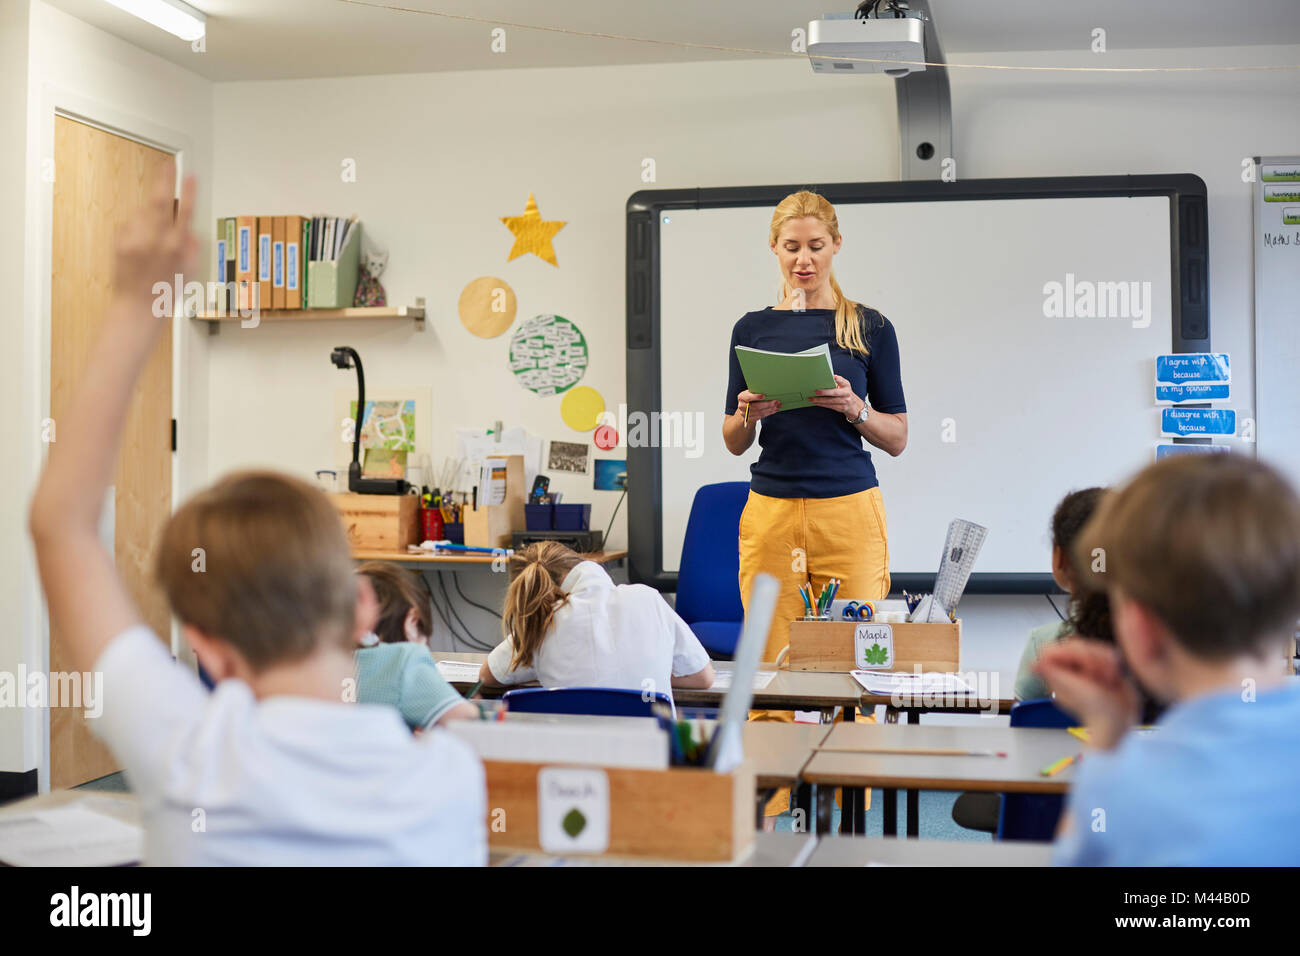 Schoolboy with hand raised in classroom lesson at primary school - Stock Image